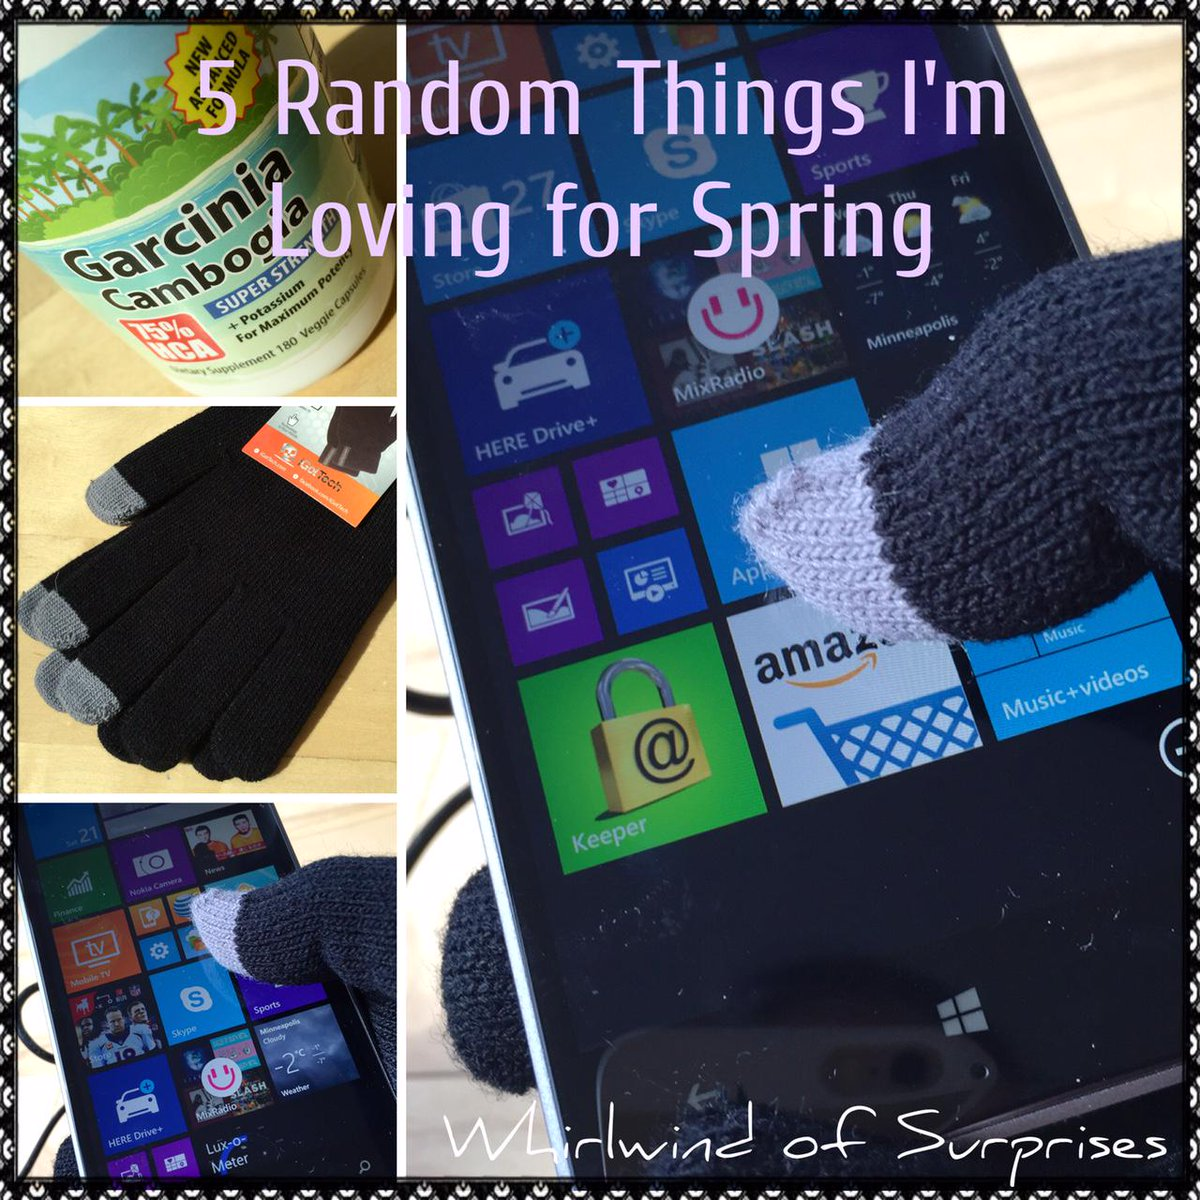 5 Random Things I'm Loving for Spring